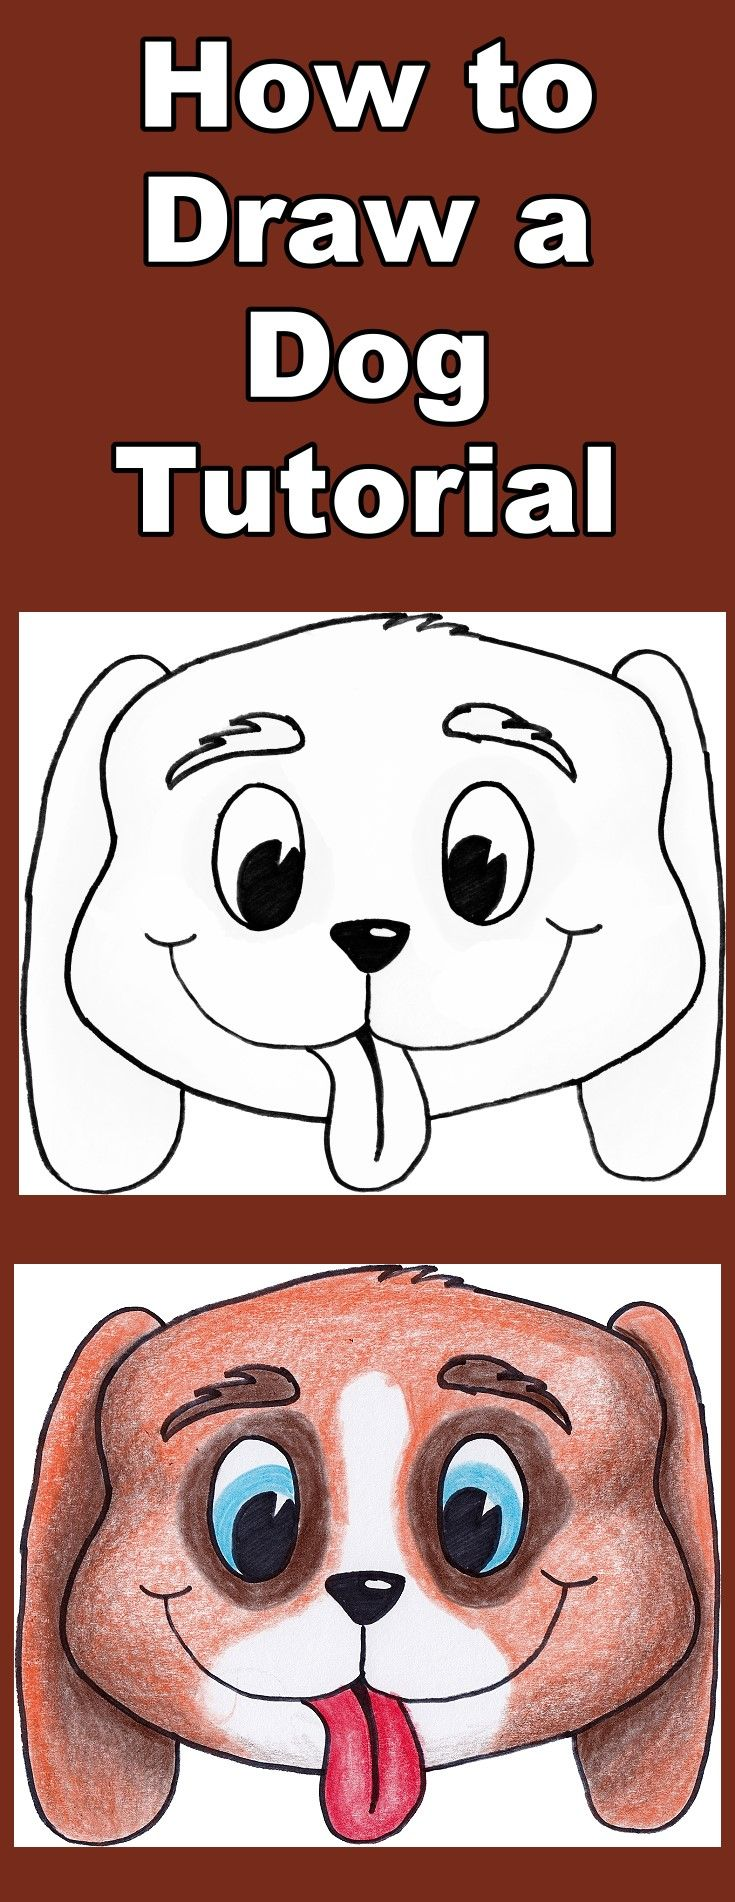 Follow the video as you learn how to draw and then color this cute cartoon dog. Includes a free downloadable coloring page.